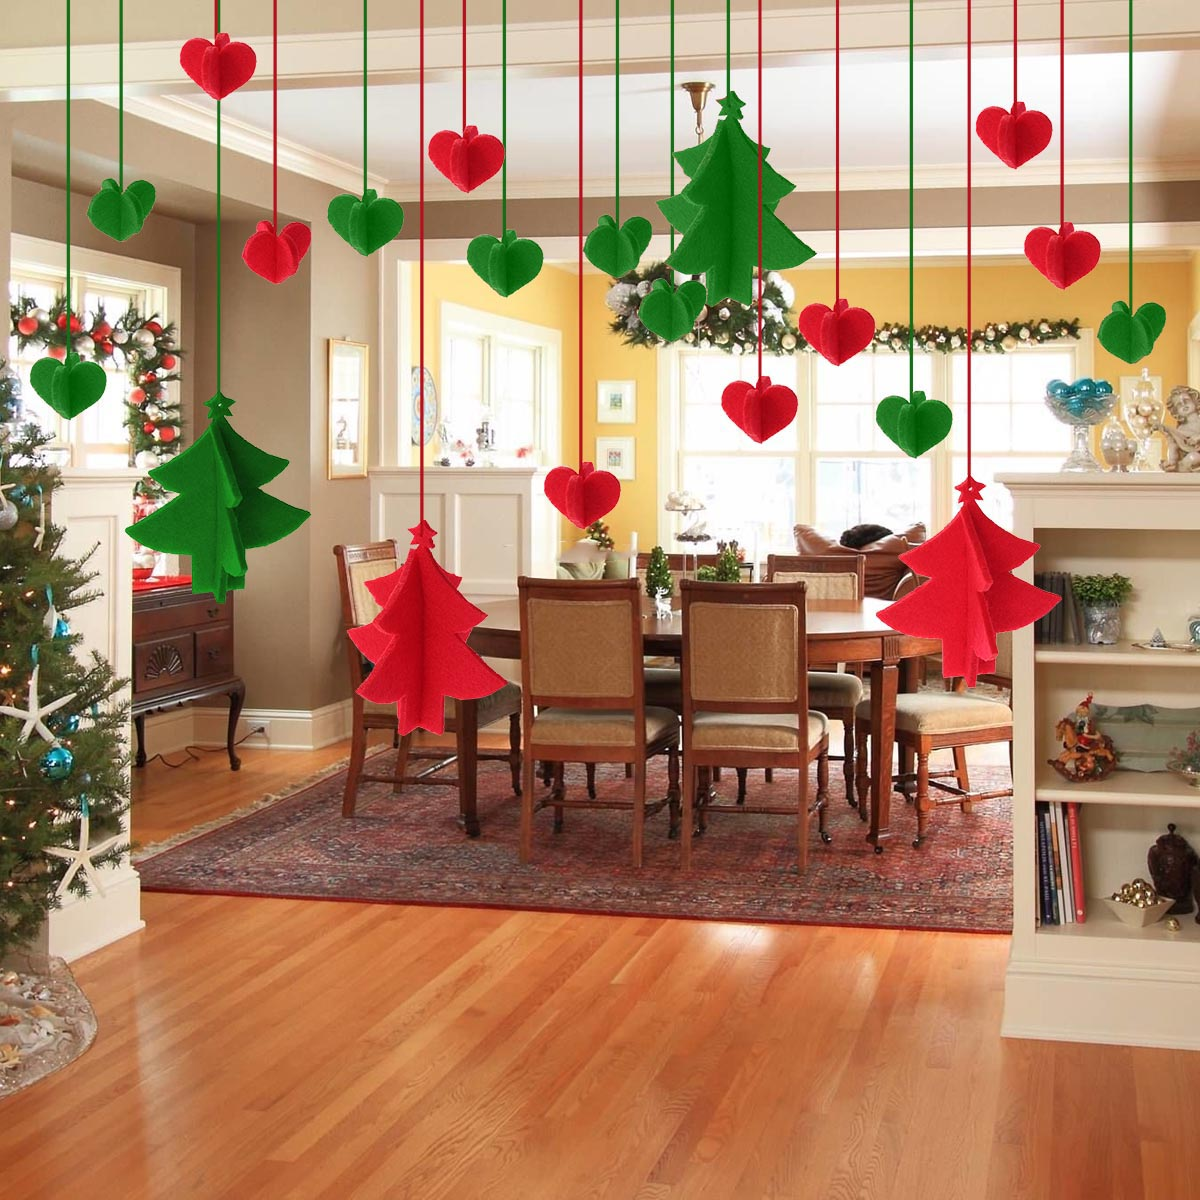 Us 3 91 30 Off Christmas Ornaments Crafted Felt Tree Hanging Kindergarten New Year Birthday Party Festival Decorations Shooting Props Charms In